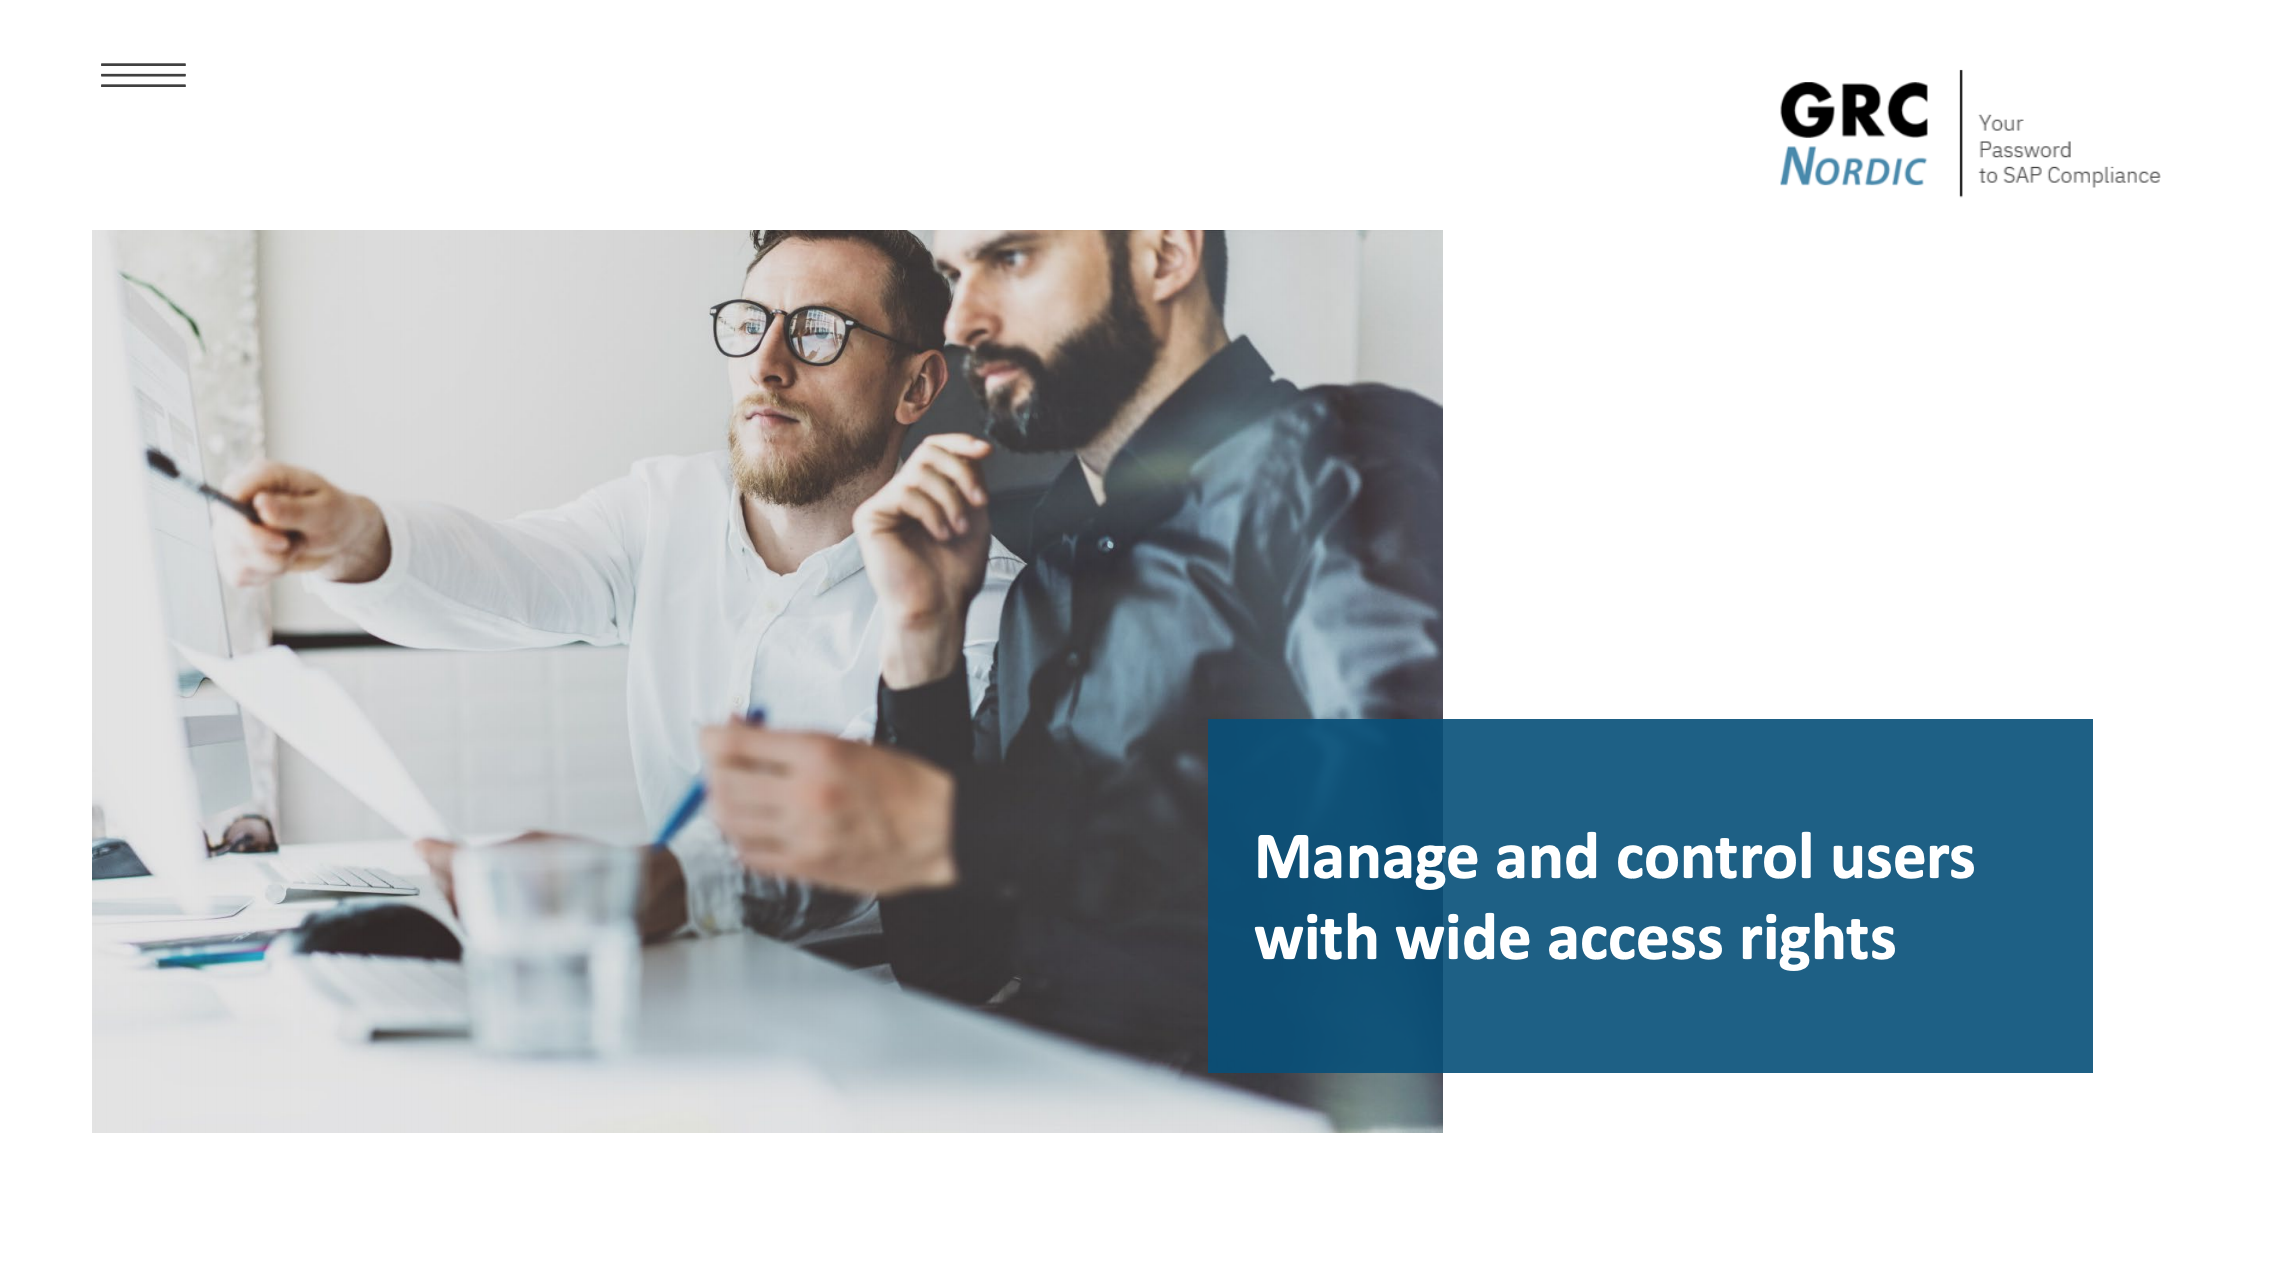 Manage and control users with wide access rights